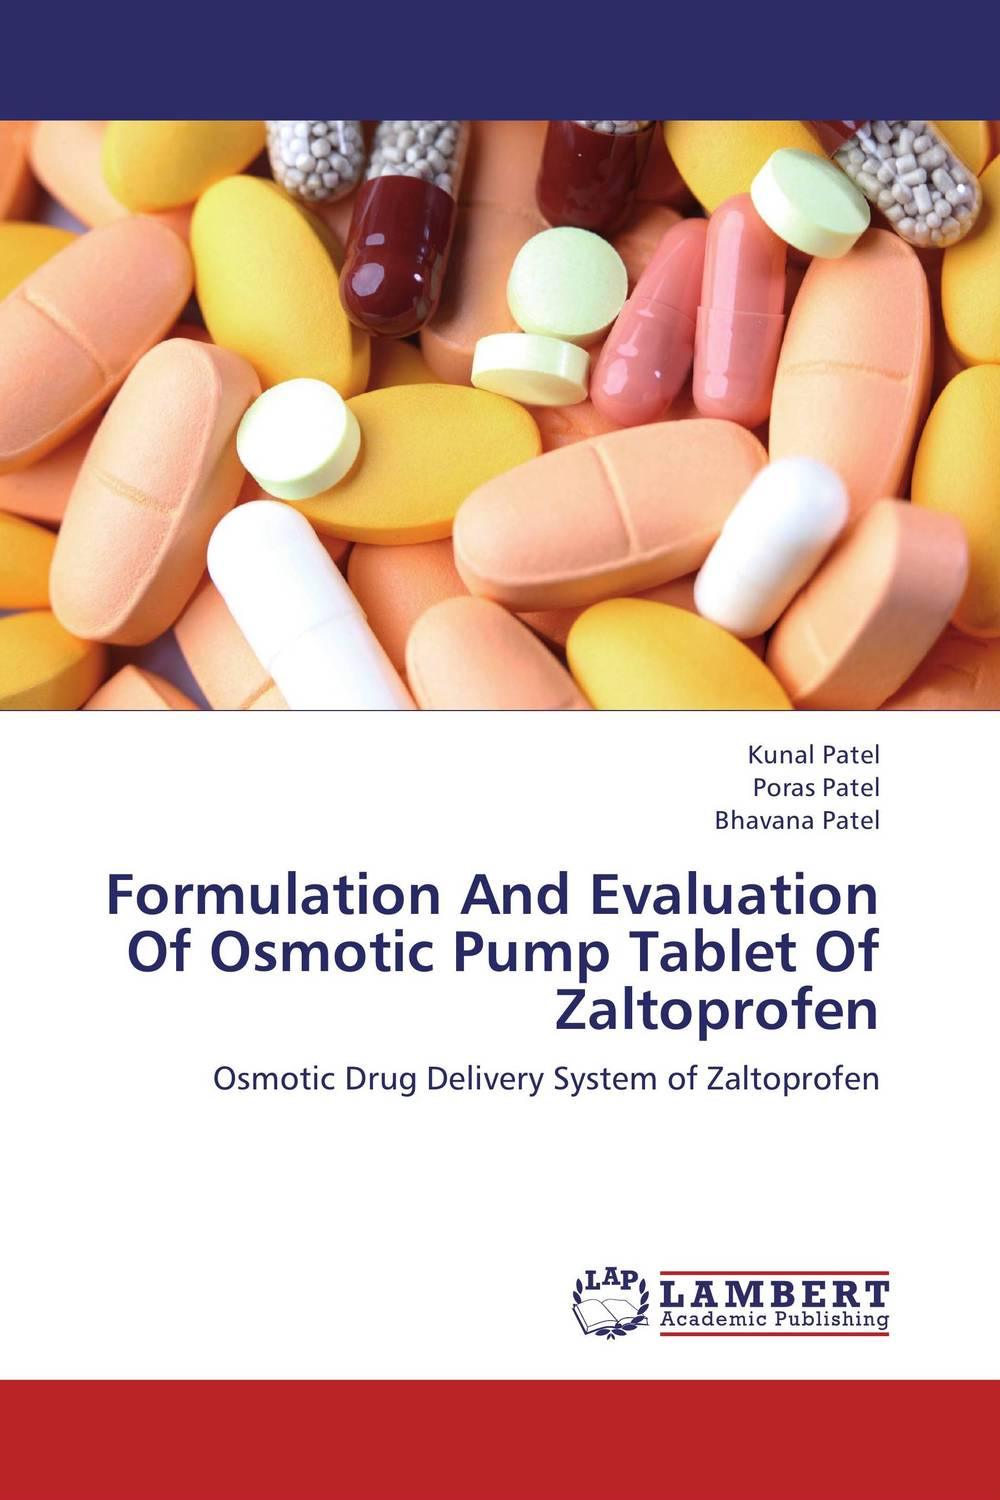 Formulation And Evaluation Of Osmotic Pump Tablet Of Zaltoprofen overview of drug utilization pattern in surgery